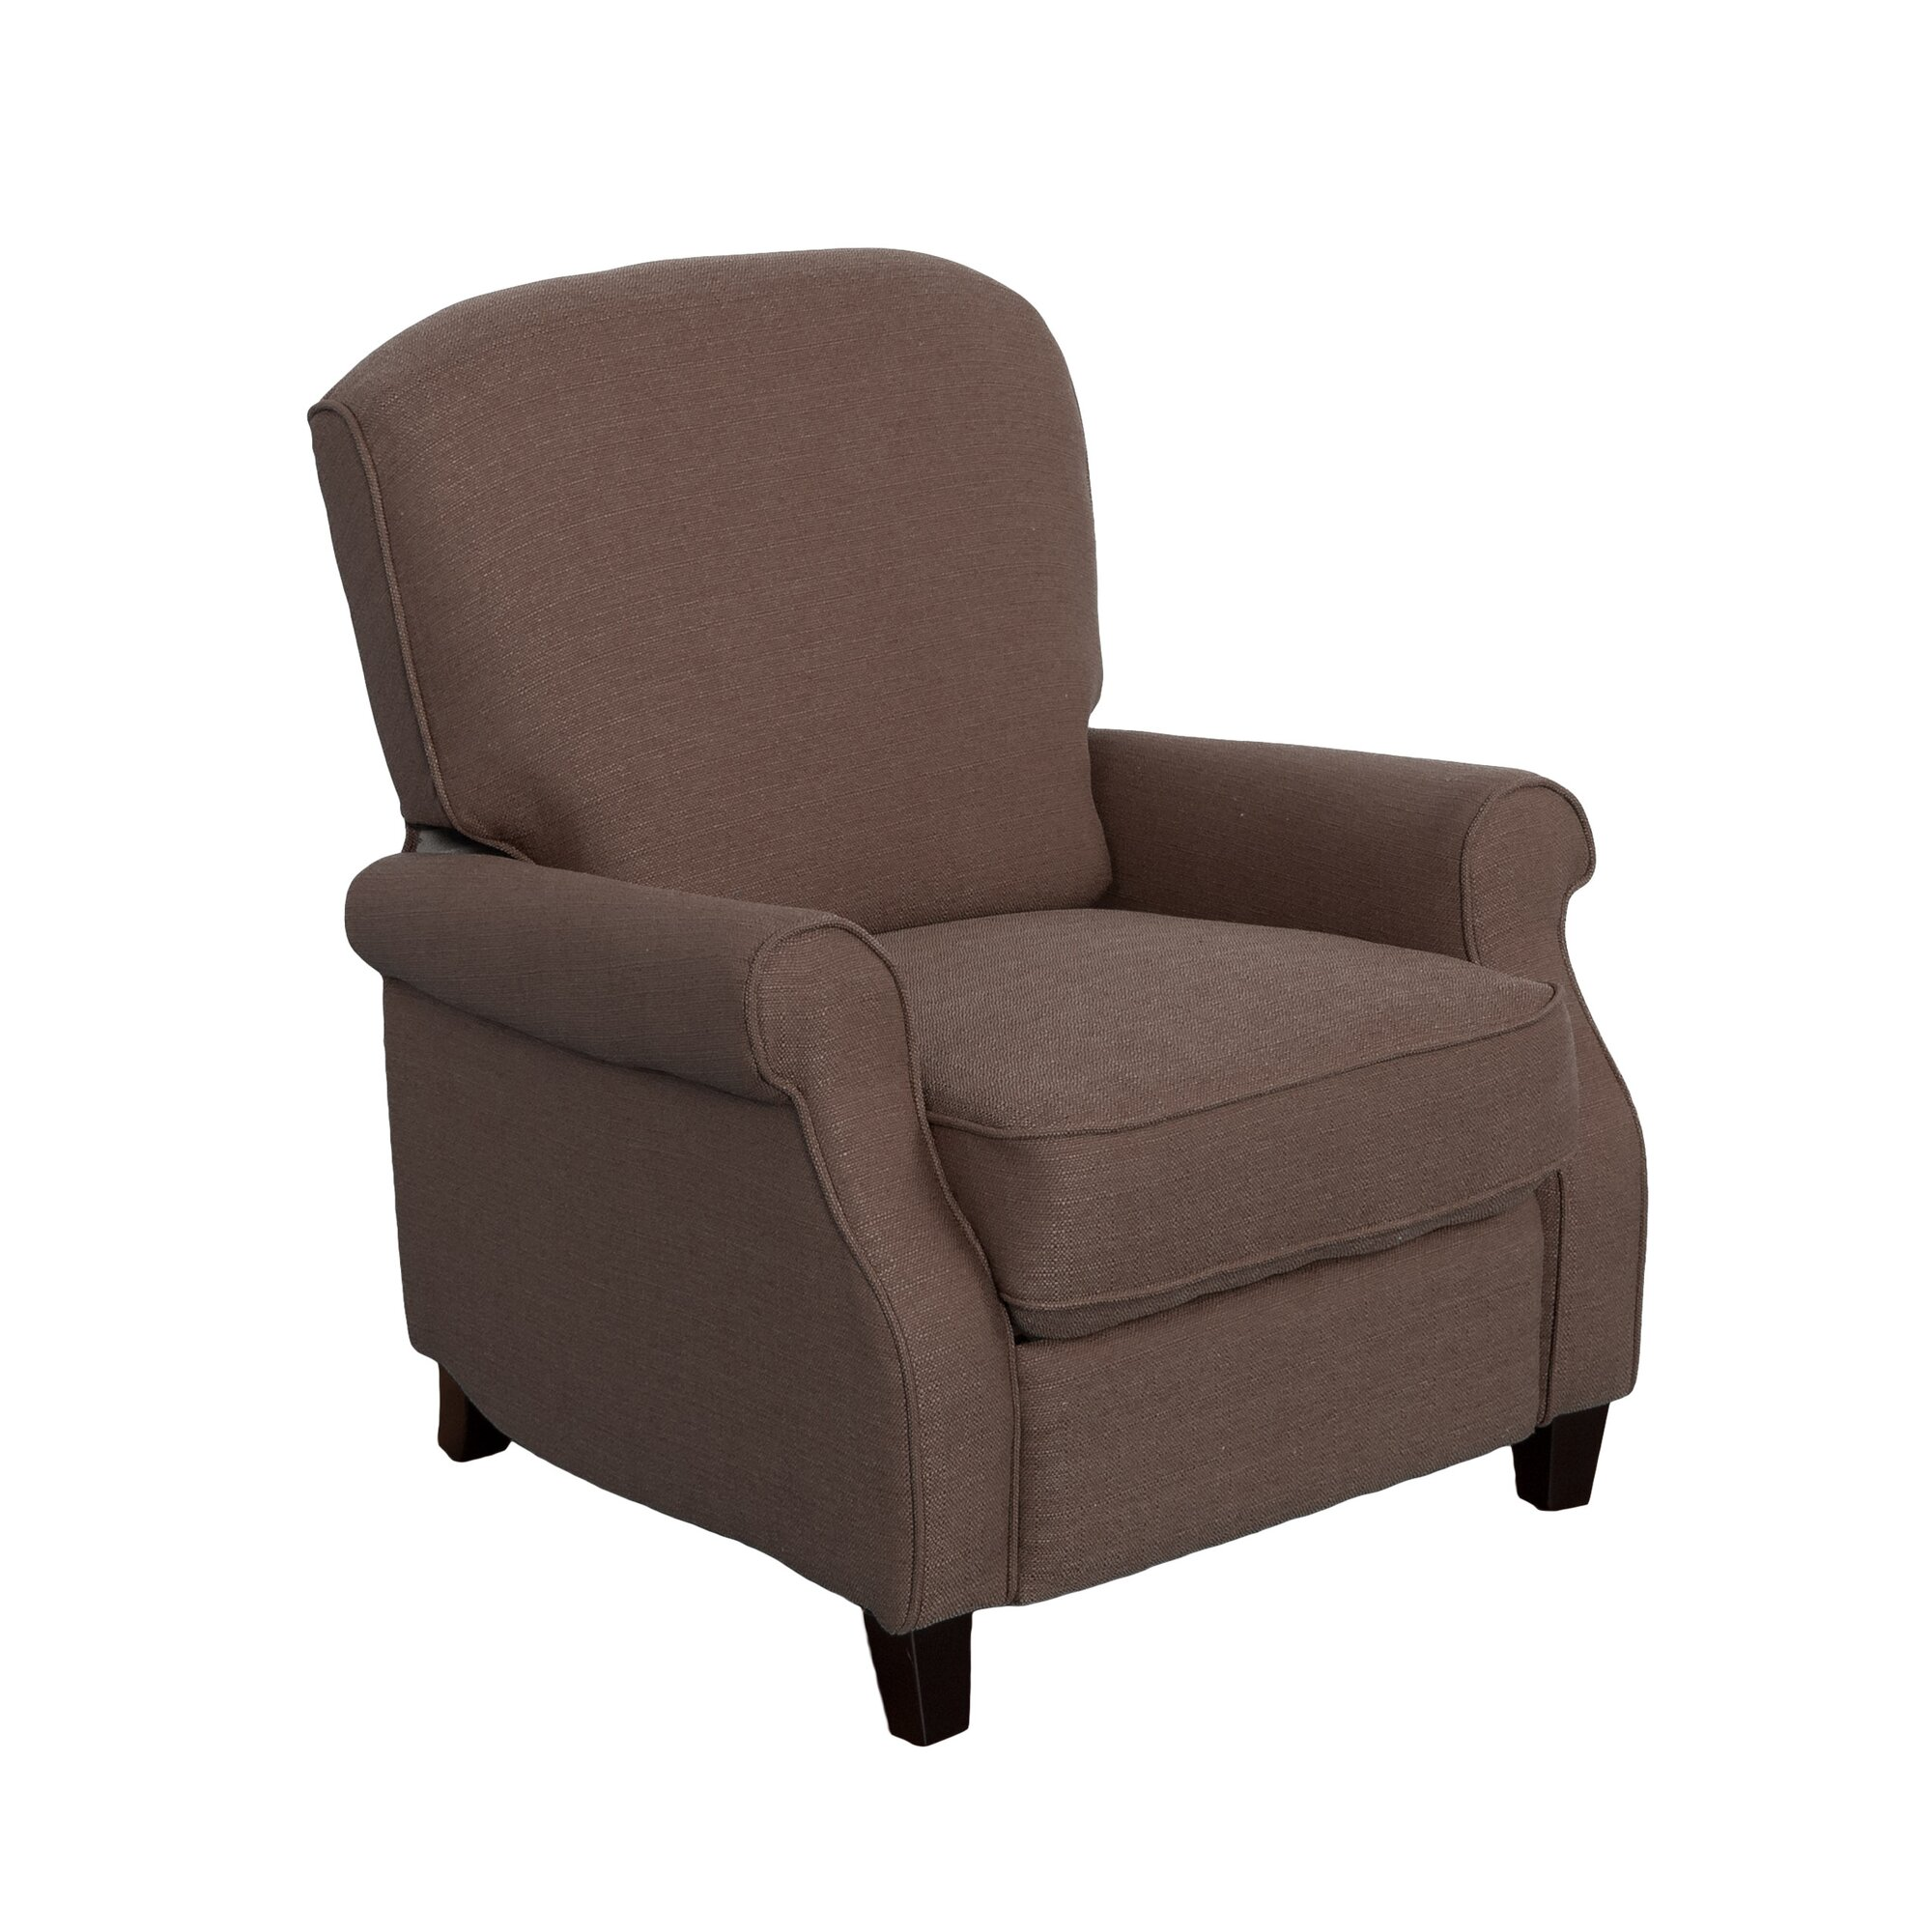 Club chair recliner - Brickhill Recliner